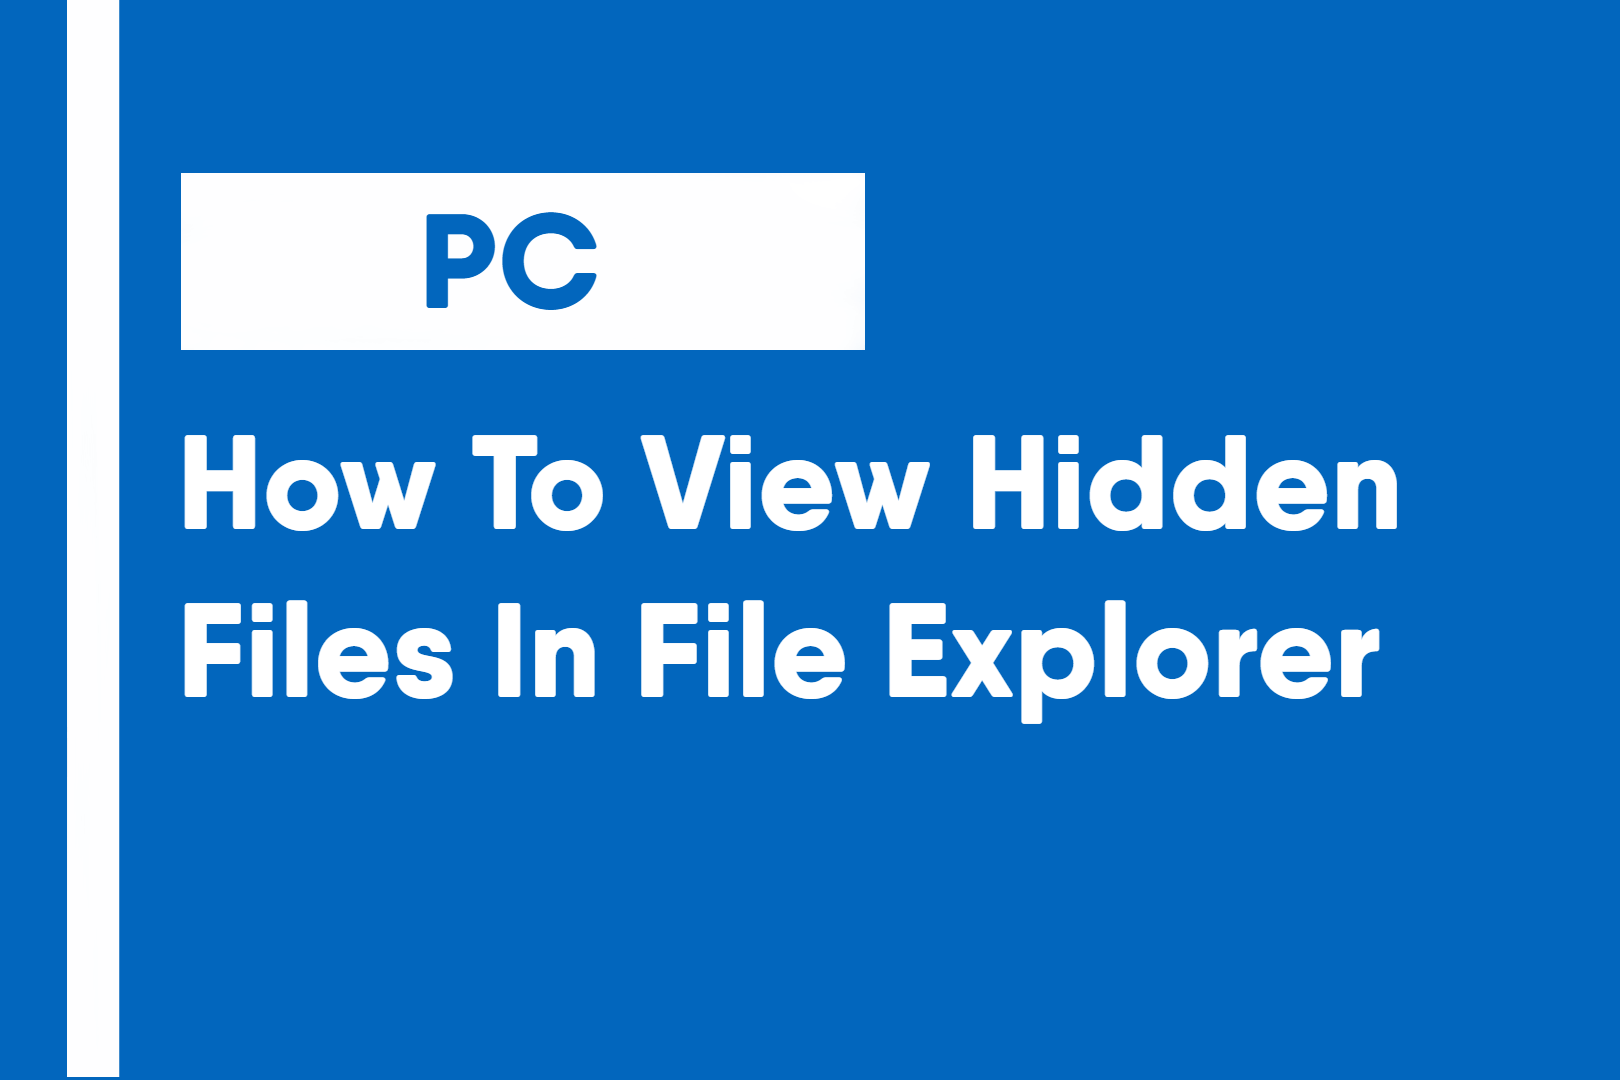 how to view hidden files in file explorer